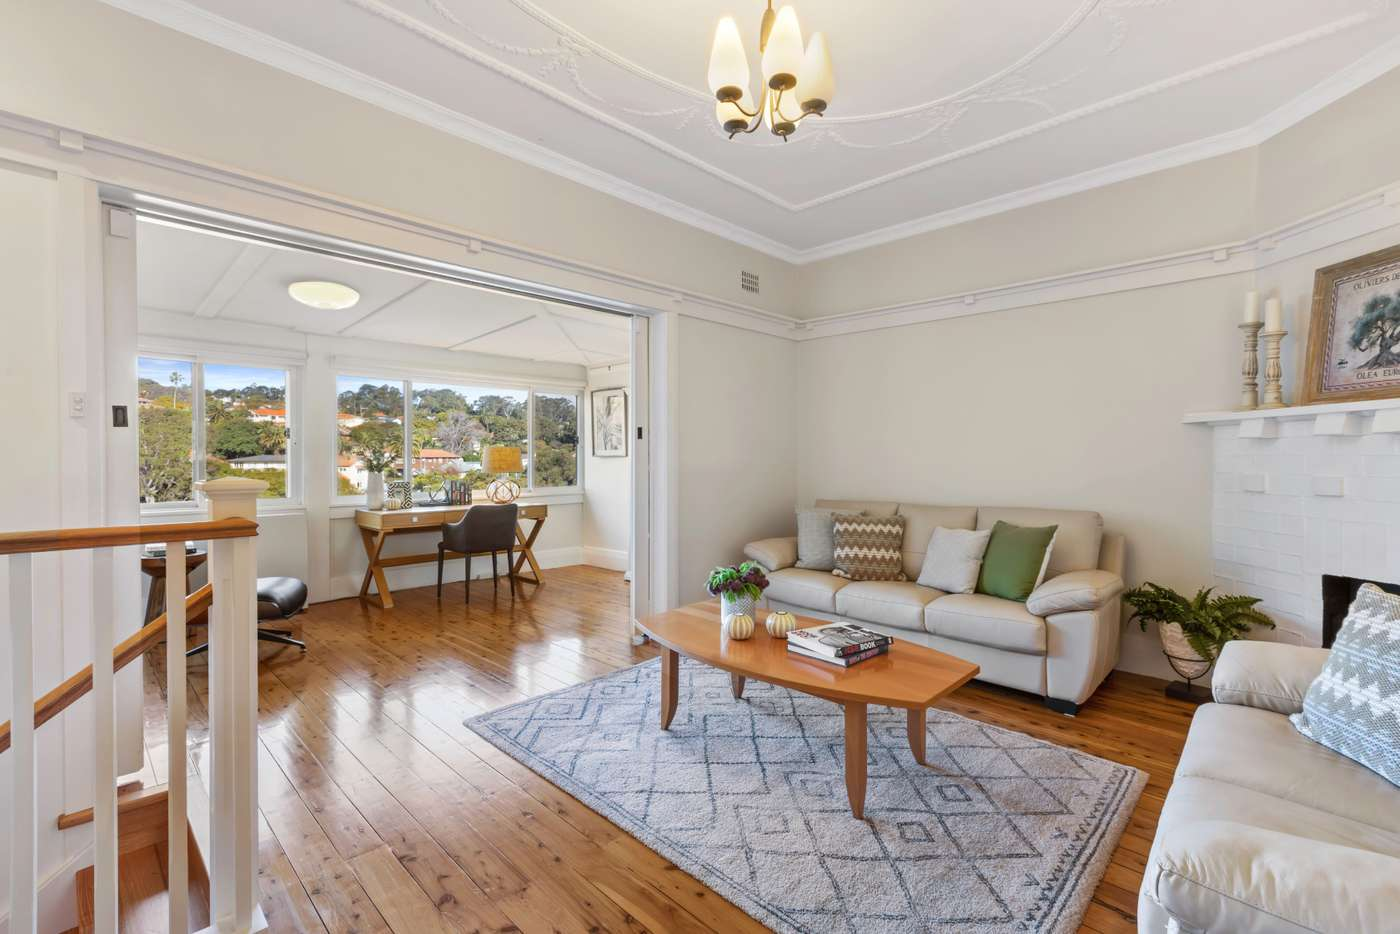 Fifth view of Homely house listing, 29 Clanalpine Street, Mosman NSW 2088